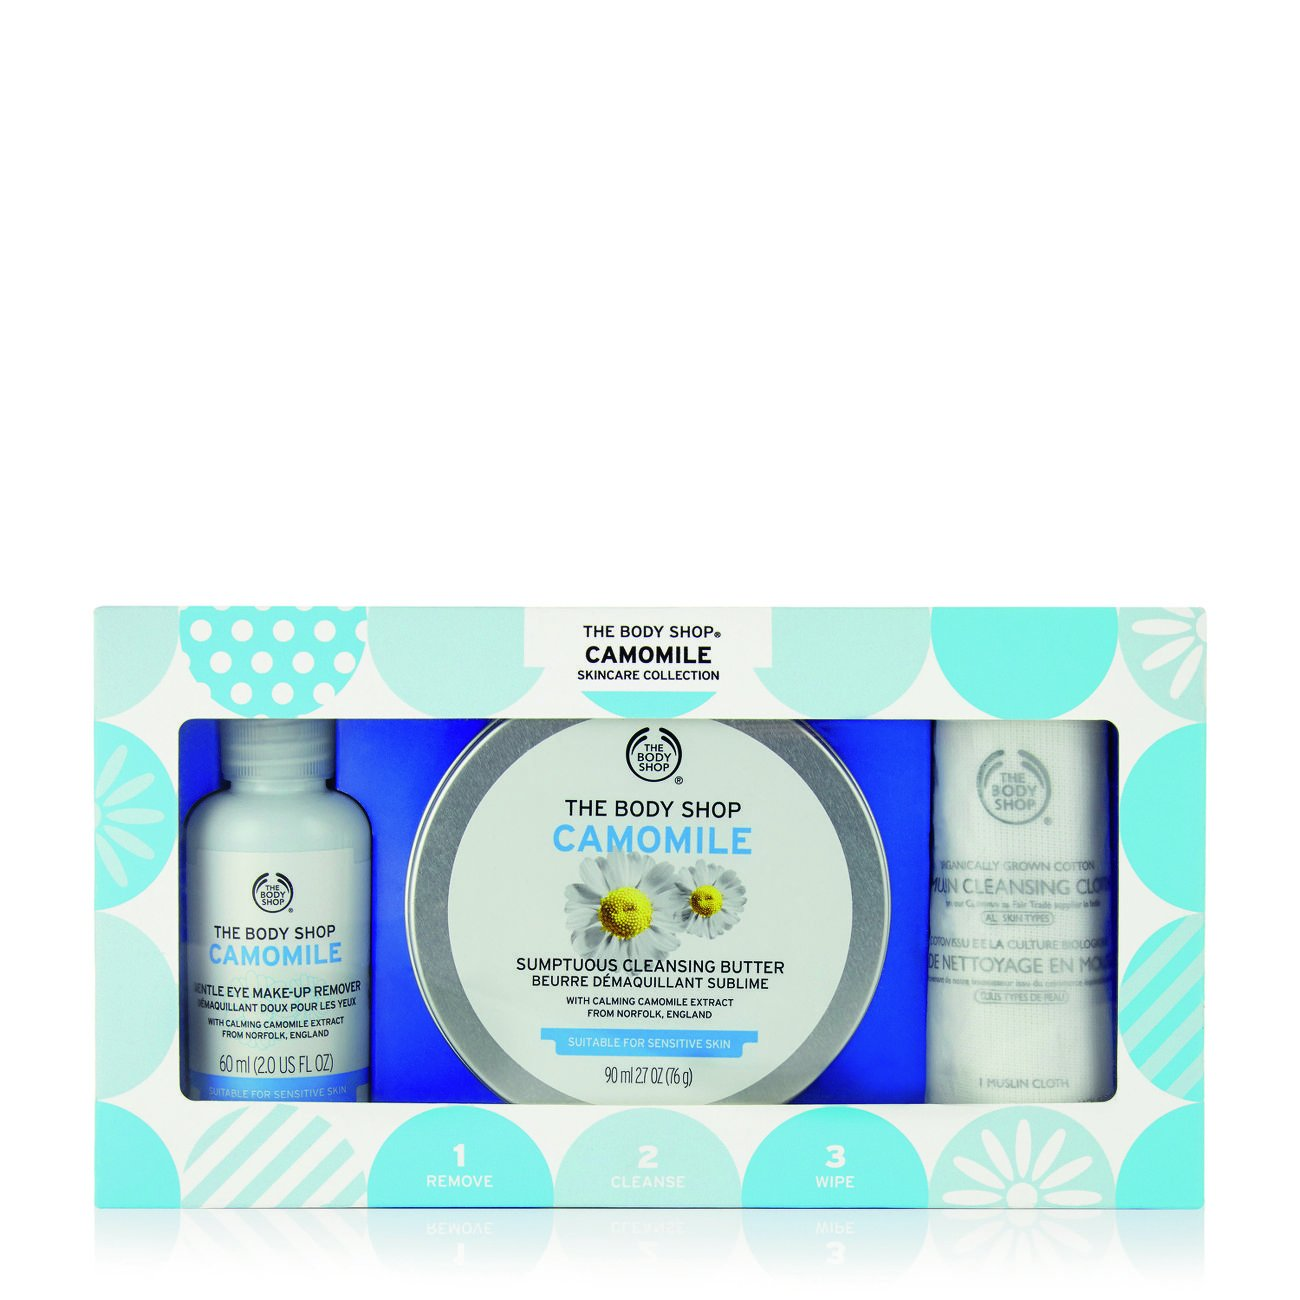 The Body Shop Camomile Makeup Remover Kit Gift Set